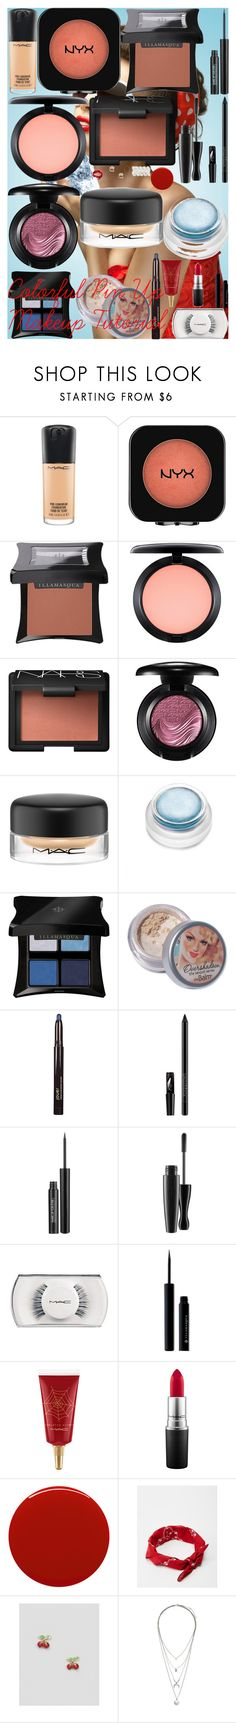 """Colorful Pin Up Makeup Tutorial"" by oroartye-1 on Polyvore featuring beauty, Retrò, MAC Cosmetics, Illamasqua, NARS Cosmetics, rms beauty, Jouer, Smashbox, MAKE UP FOR EVER and Smith & Cult"